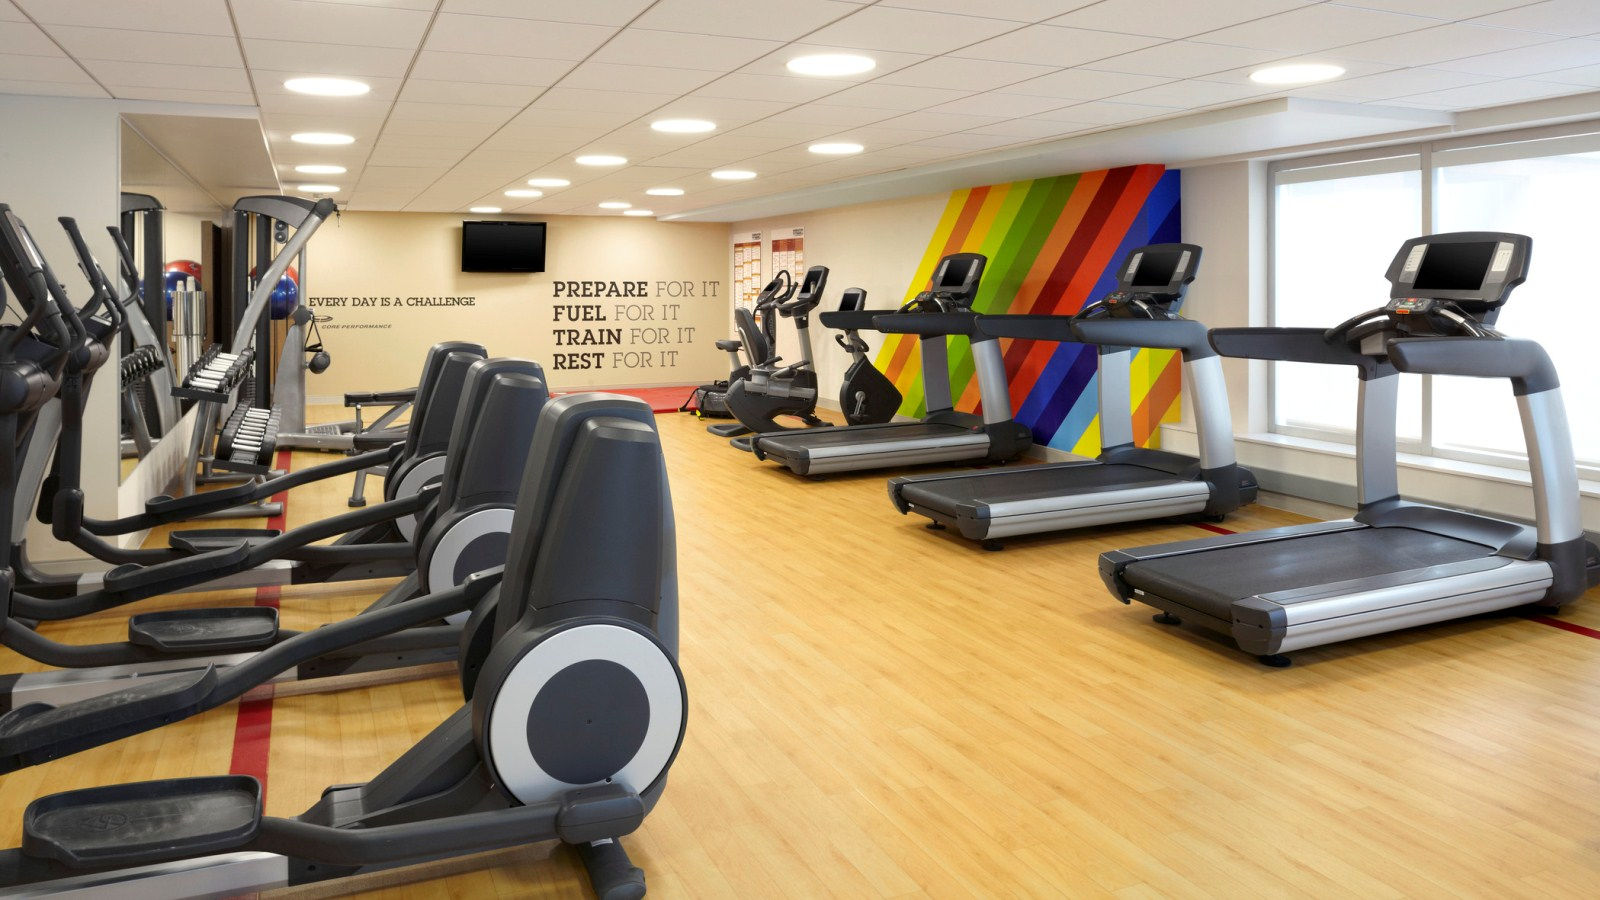 Amenities and Services - Fitness Centre